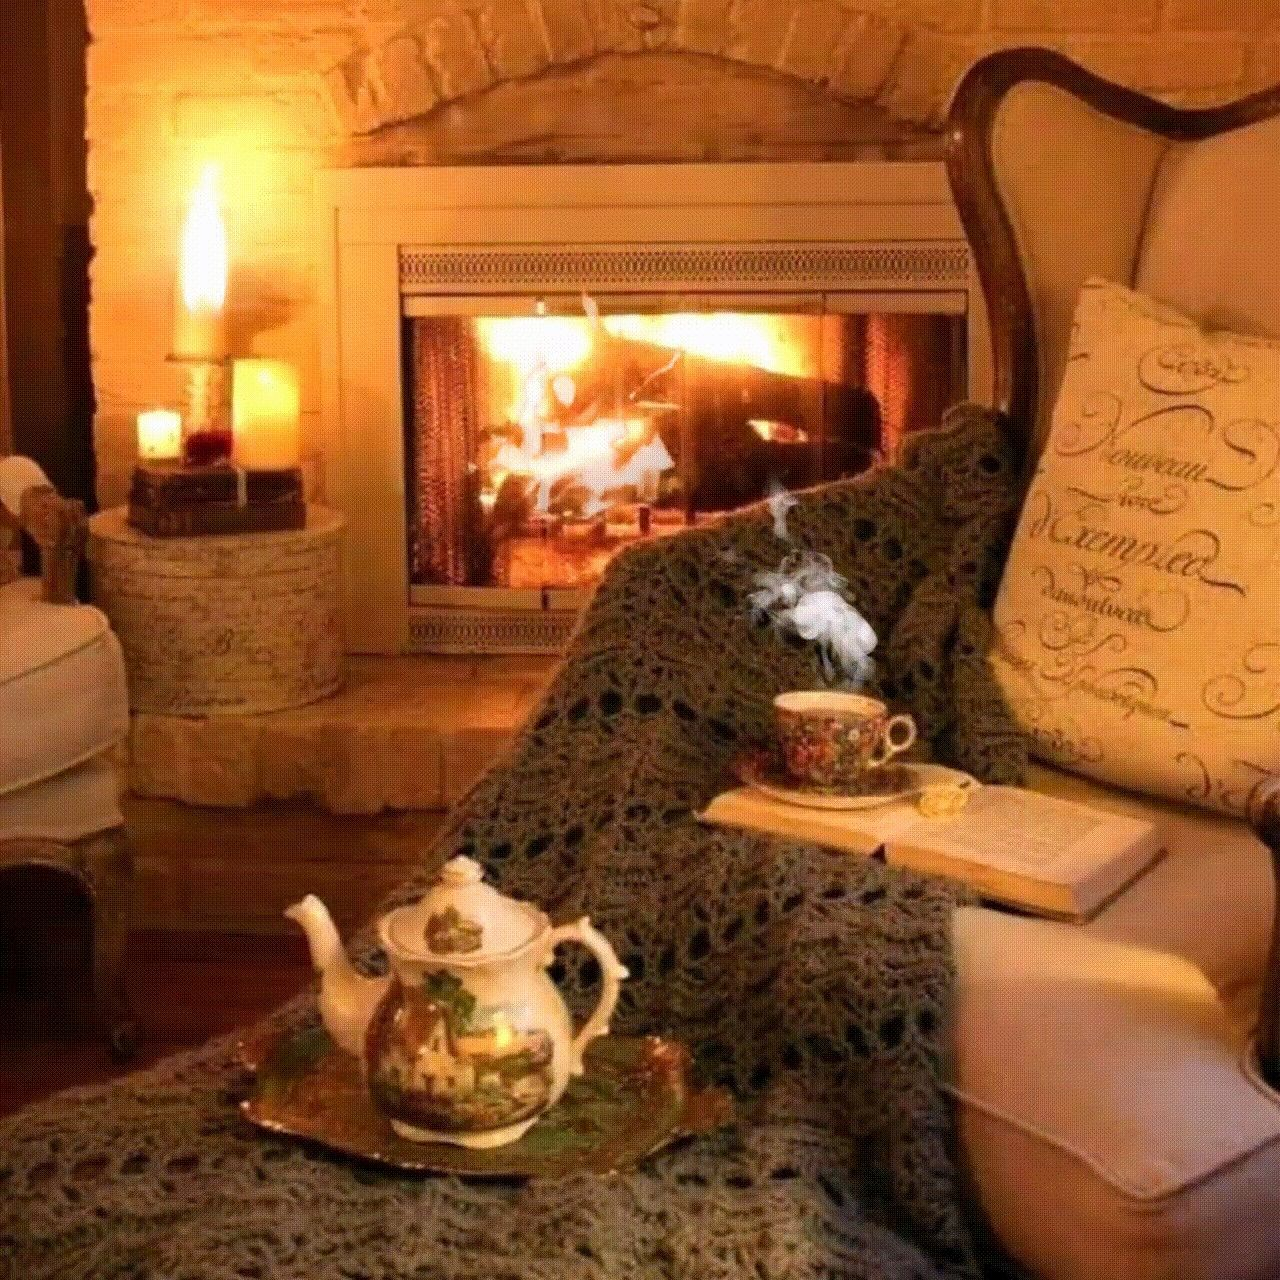 Pin by Jamii Nelson on 1920s | Cottage fireplace, Cozy ... on Fireplace Casual Living id=90341